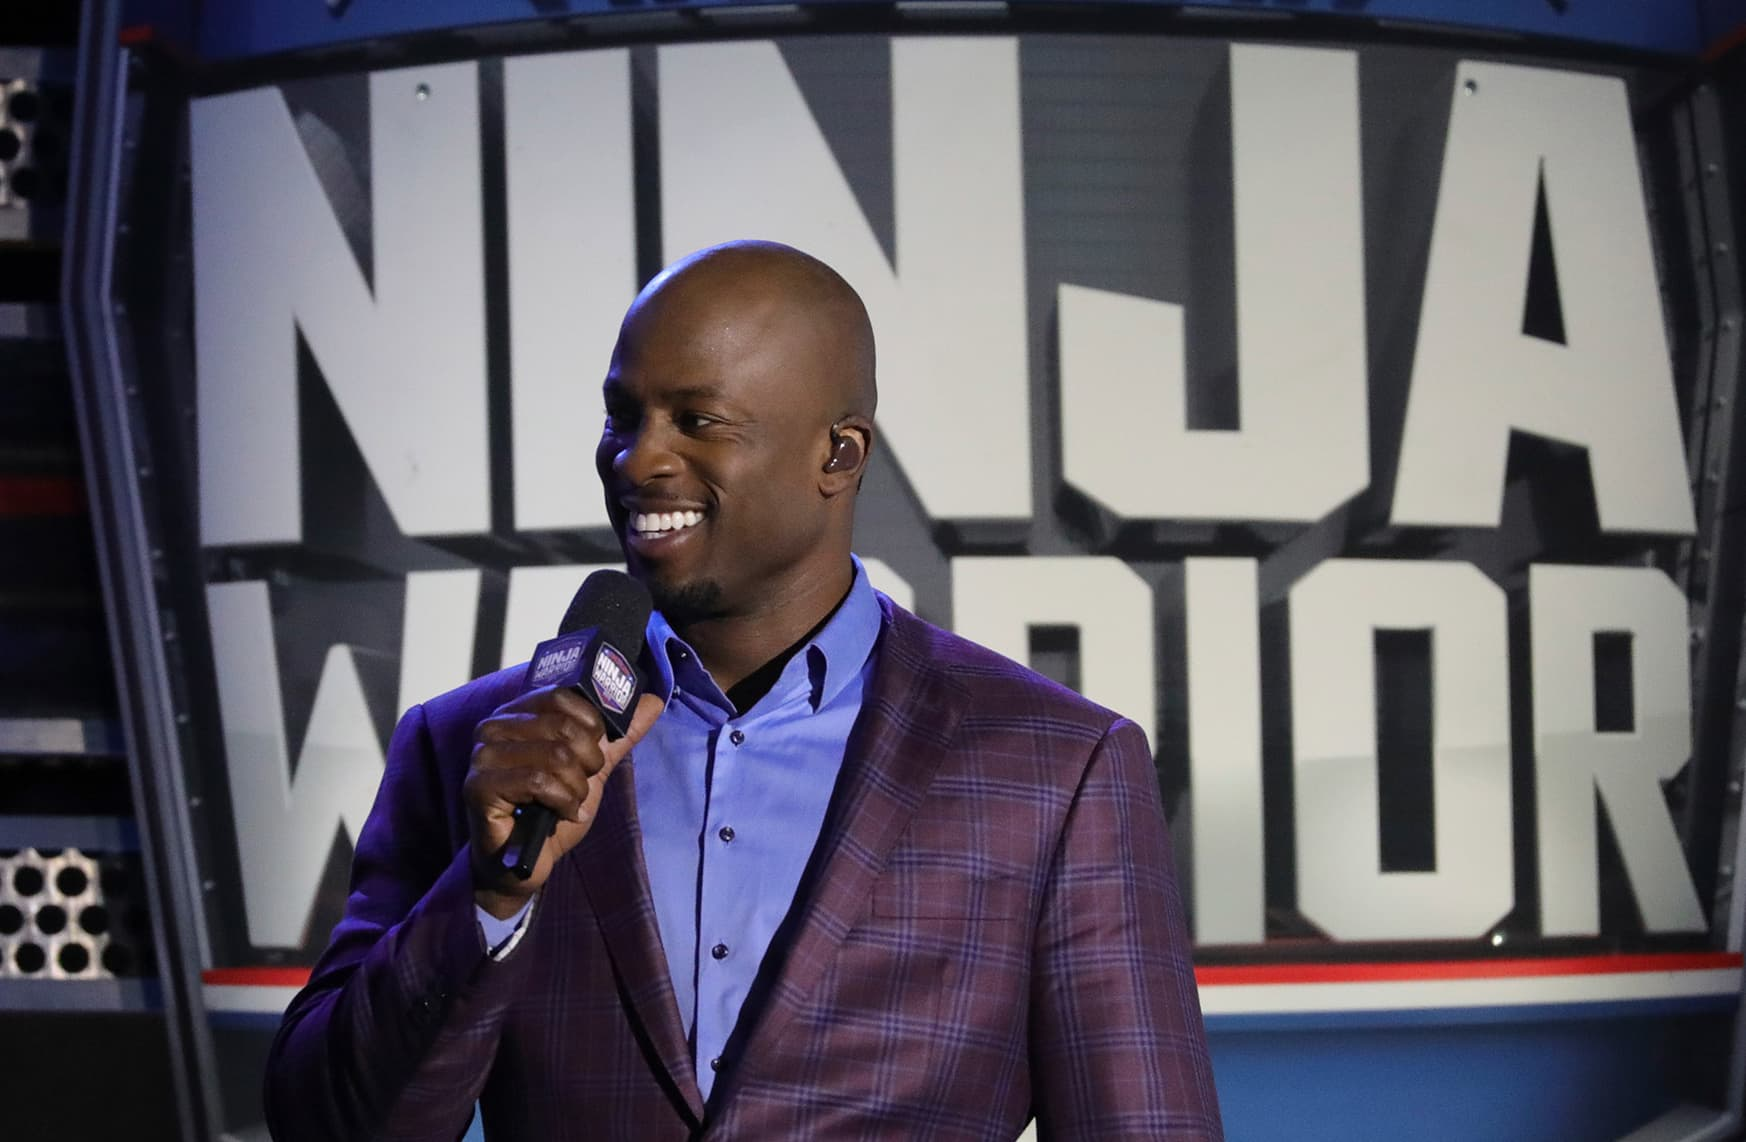 'American Ninja Warrior' host Akbar Gbajabiamila reveals his winning financial game plan